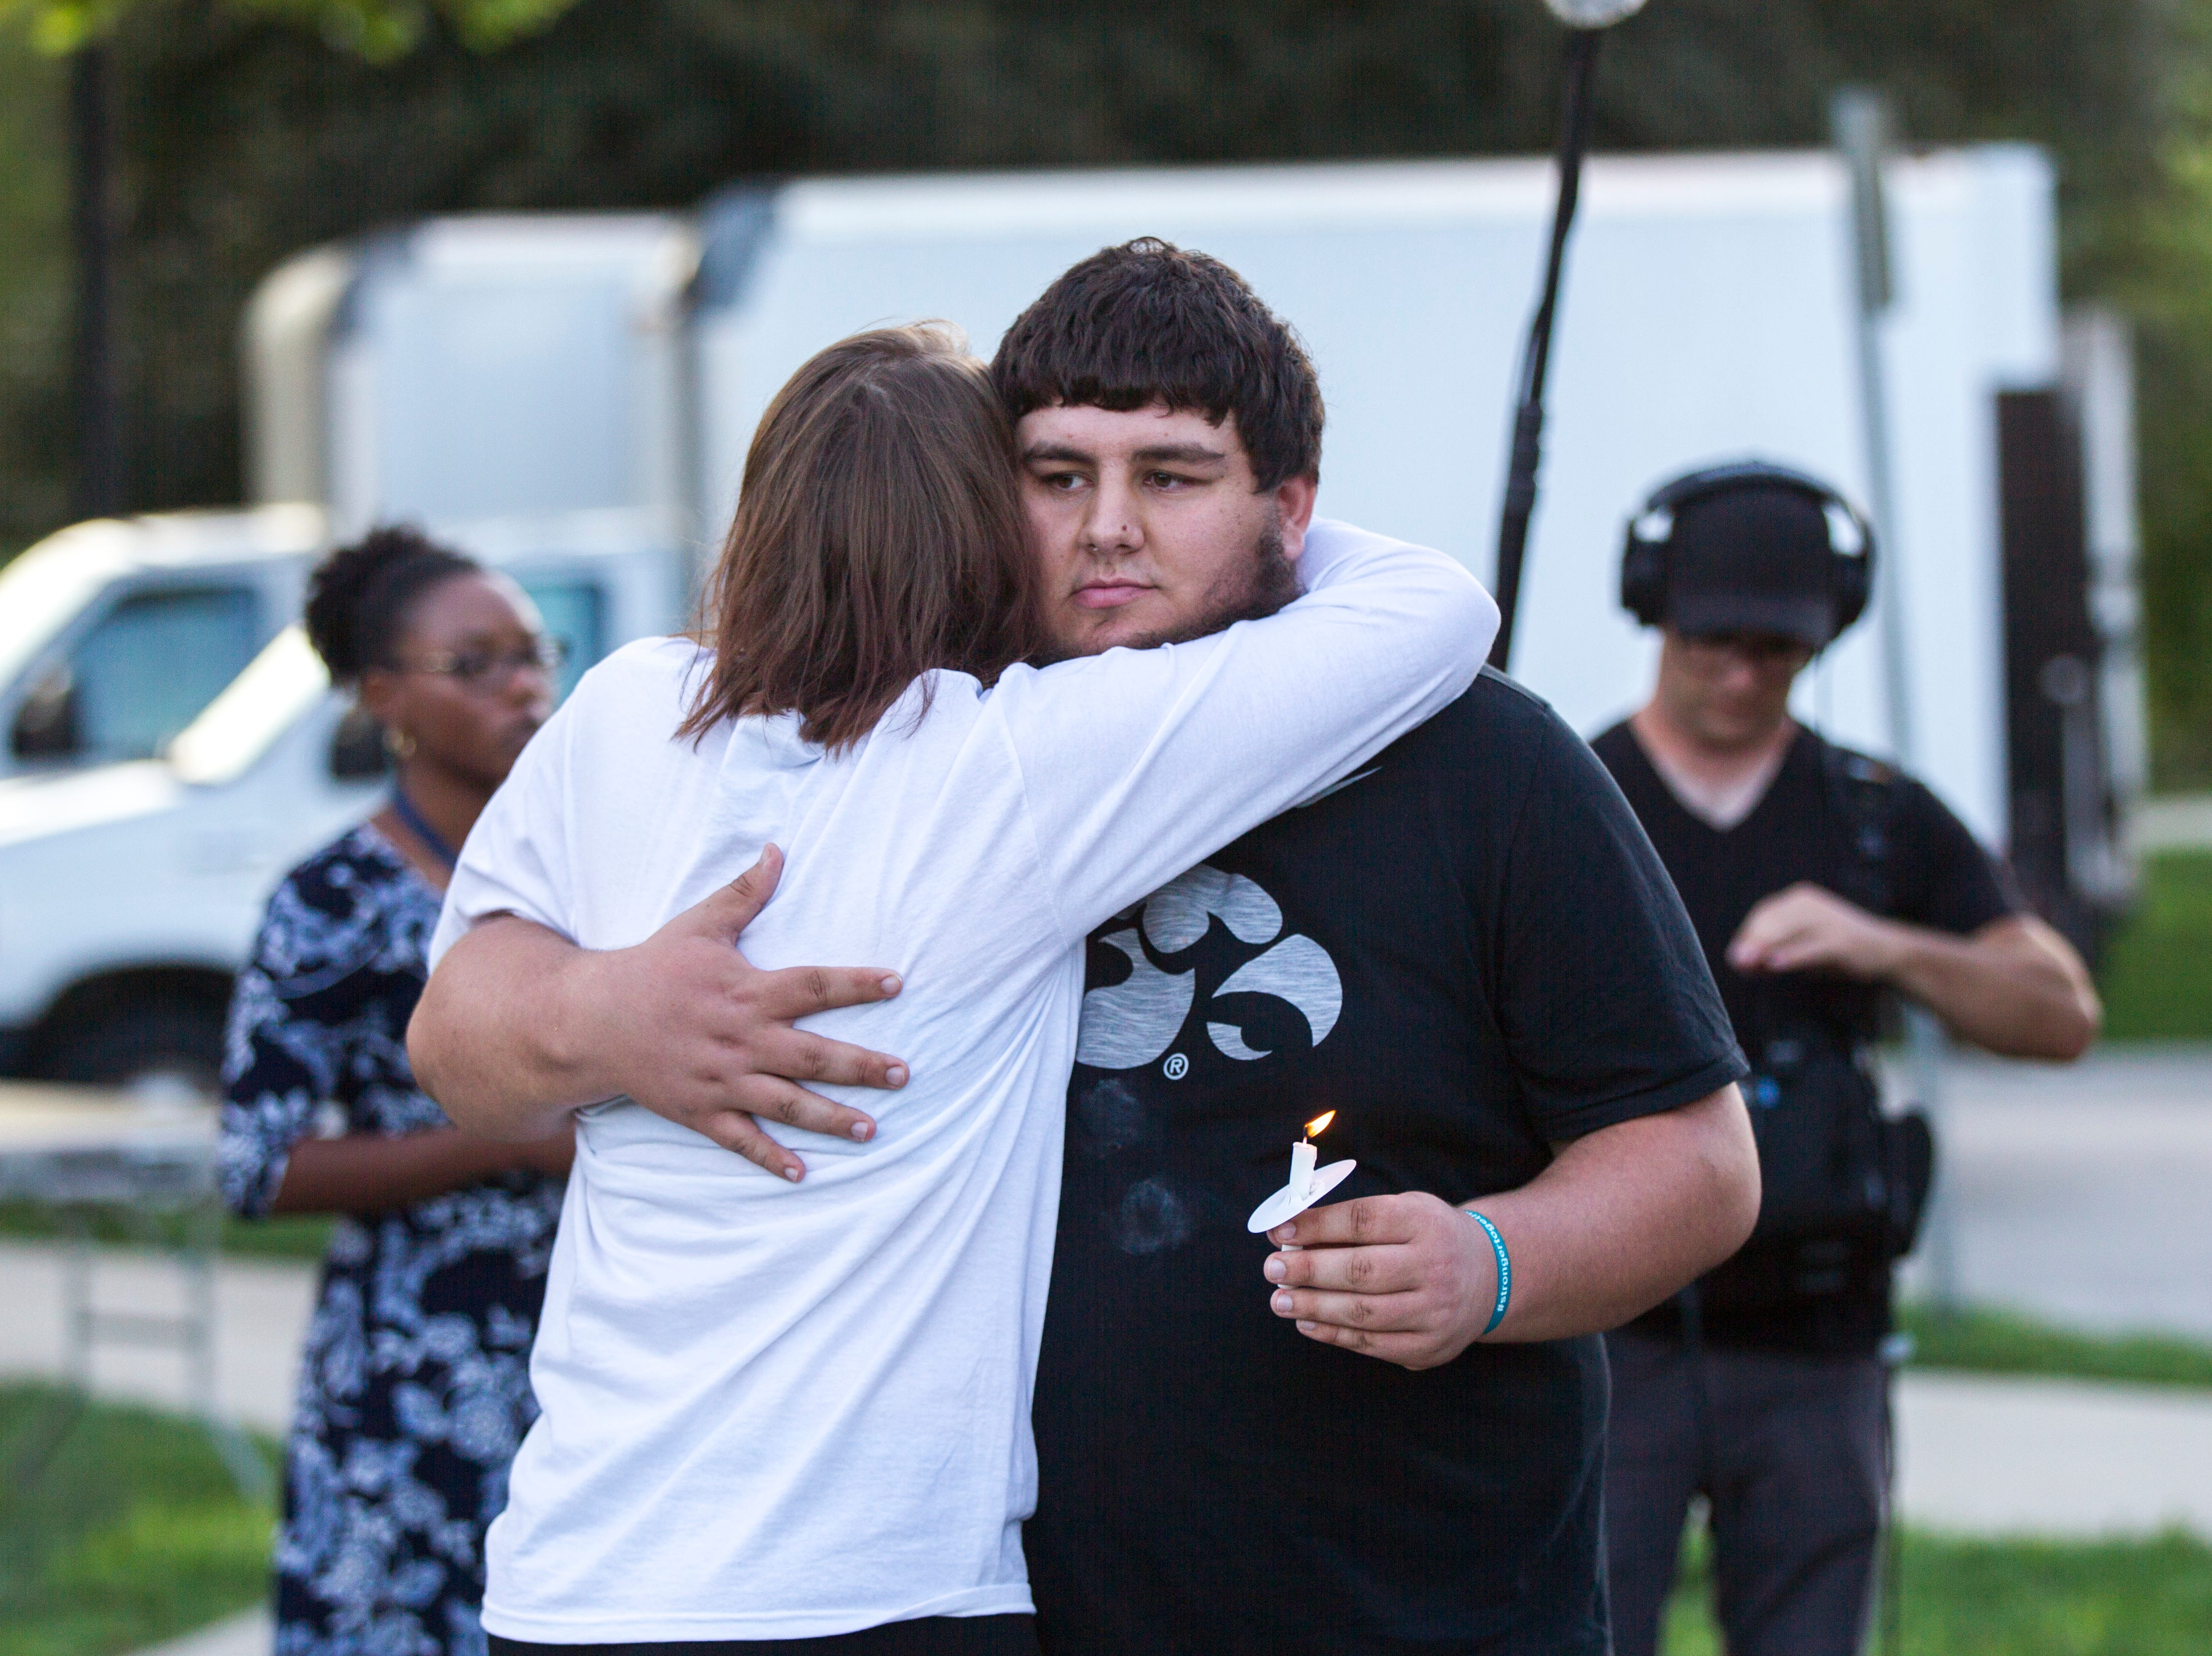 Breck Goodman embraces Jake Tibbetts, the brother of Mollie Tibbetts, during a vigil for Mollie Tibbetts on Wednesday, Aug. 22, 2018, in Hubbard Park on the University of Iowa campus in Iowa City.